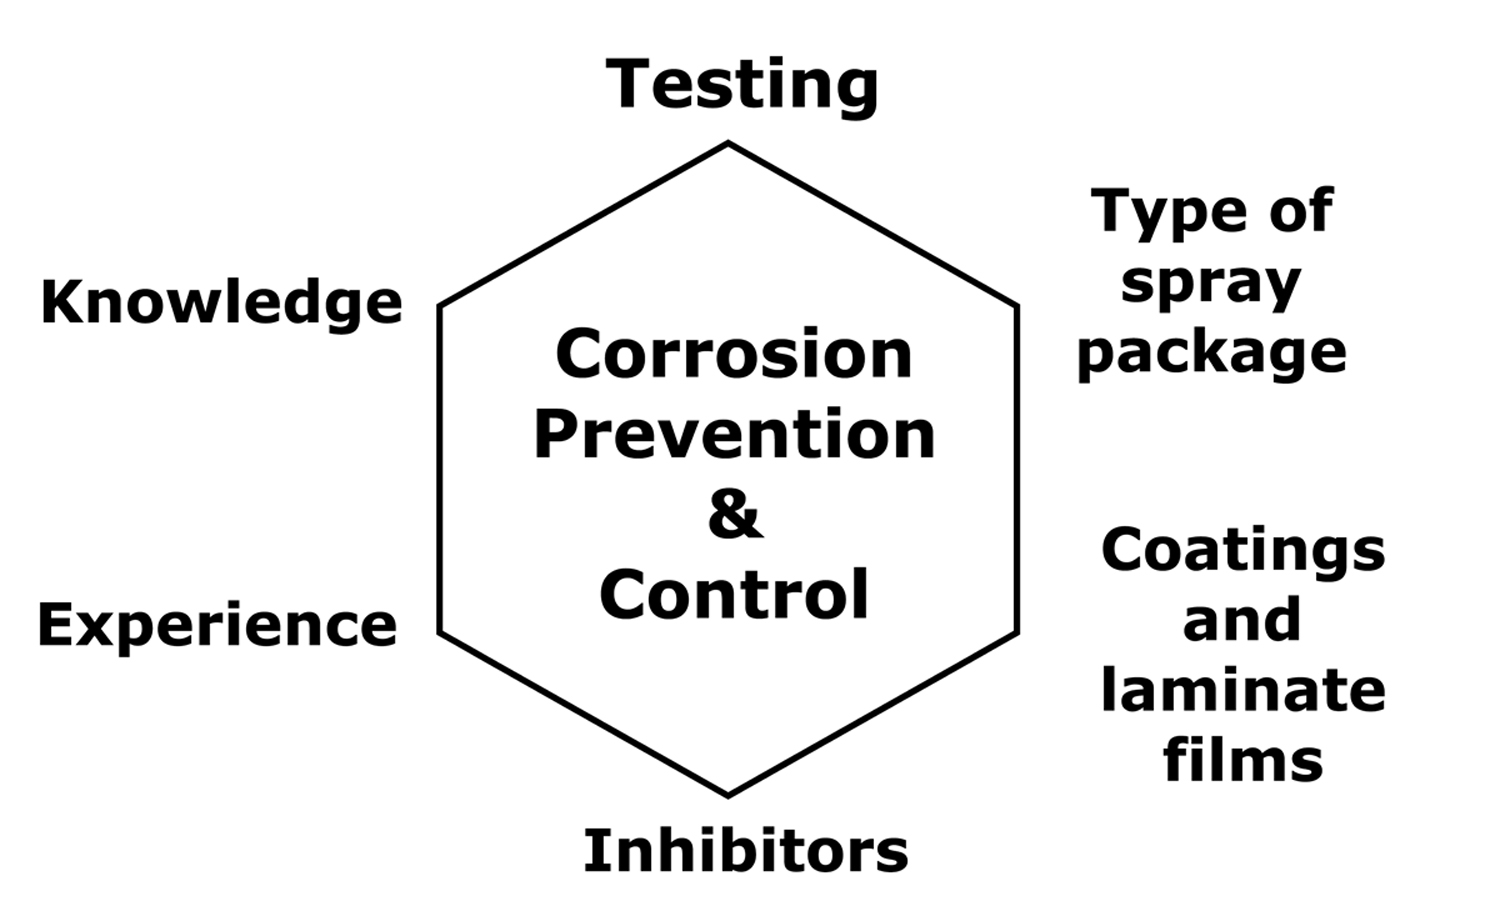 Figure 1: The elements of a comprehensive spray packaging corrosion control and prevention program.